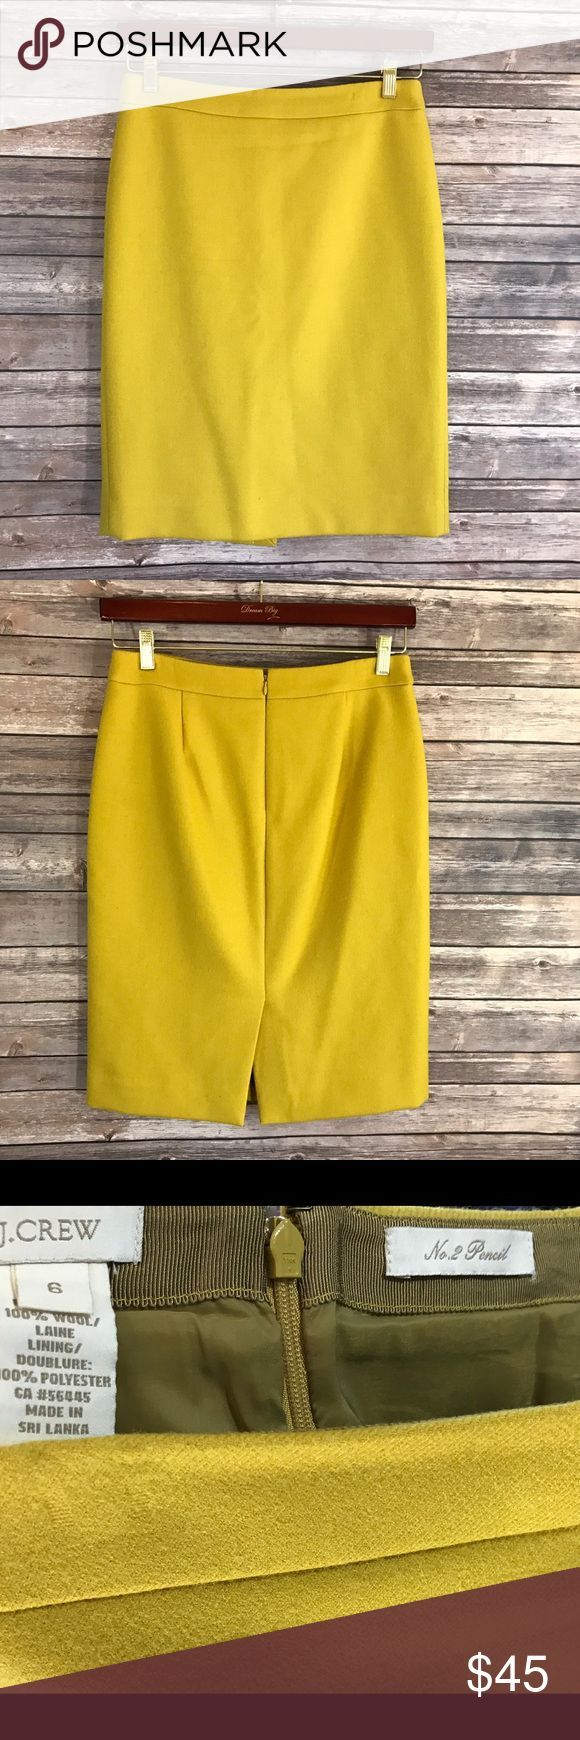 J Crew No 2 Pencil Skit in Double Serge Wool J Crew No 2 Pencil Skit in Double Serge Wool Mustard Yellow Size 6 Knee Length. Measurements: In inches Waist: 31 Length: 23.5 J. Crew Skirts Pencil